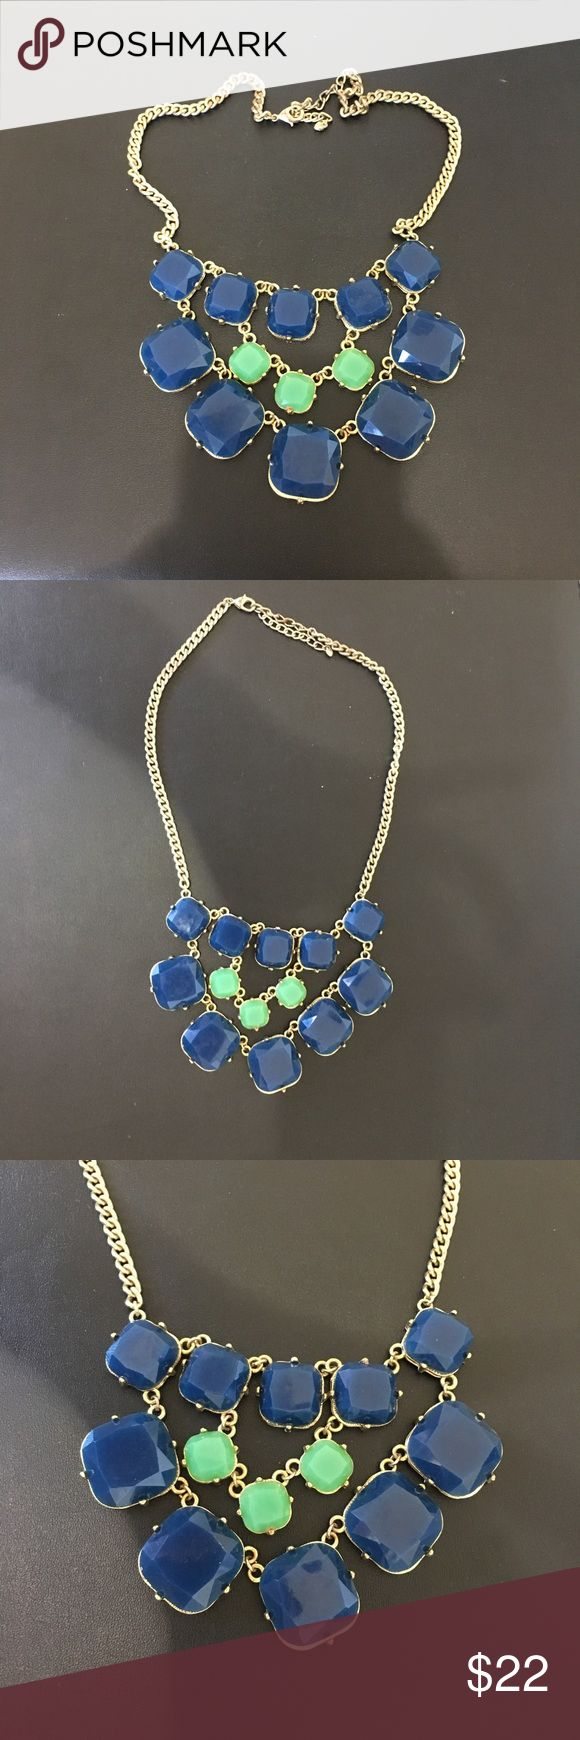 Like! Blue & teal necklace with gold chain Like! Blue & teal necklace with gold chain. From Francesca's boutique store. Perfect to dress up any outfit!  Francesca's Collections Jewelry Necklaces #goldchain #goldchainmen #goldchainwomen #goldchaincanada #canada